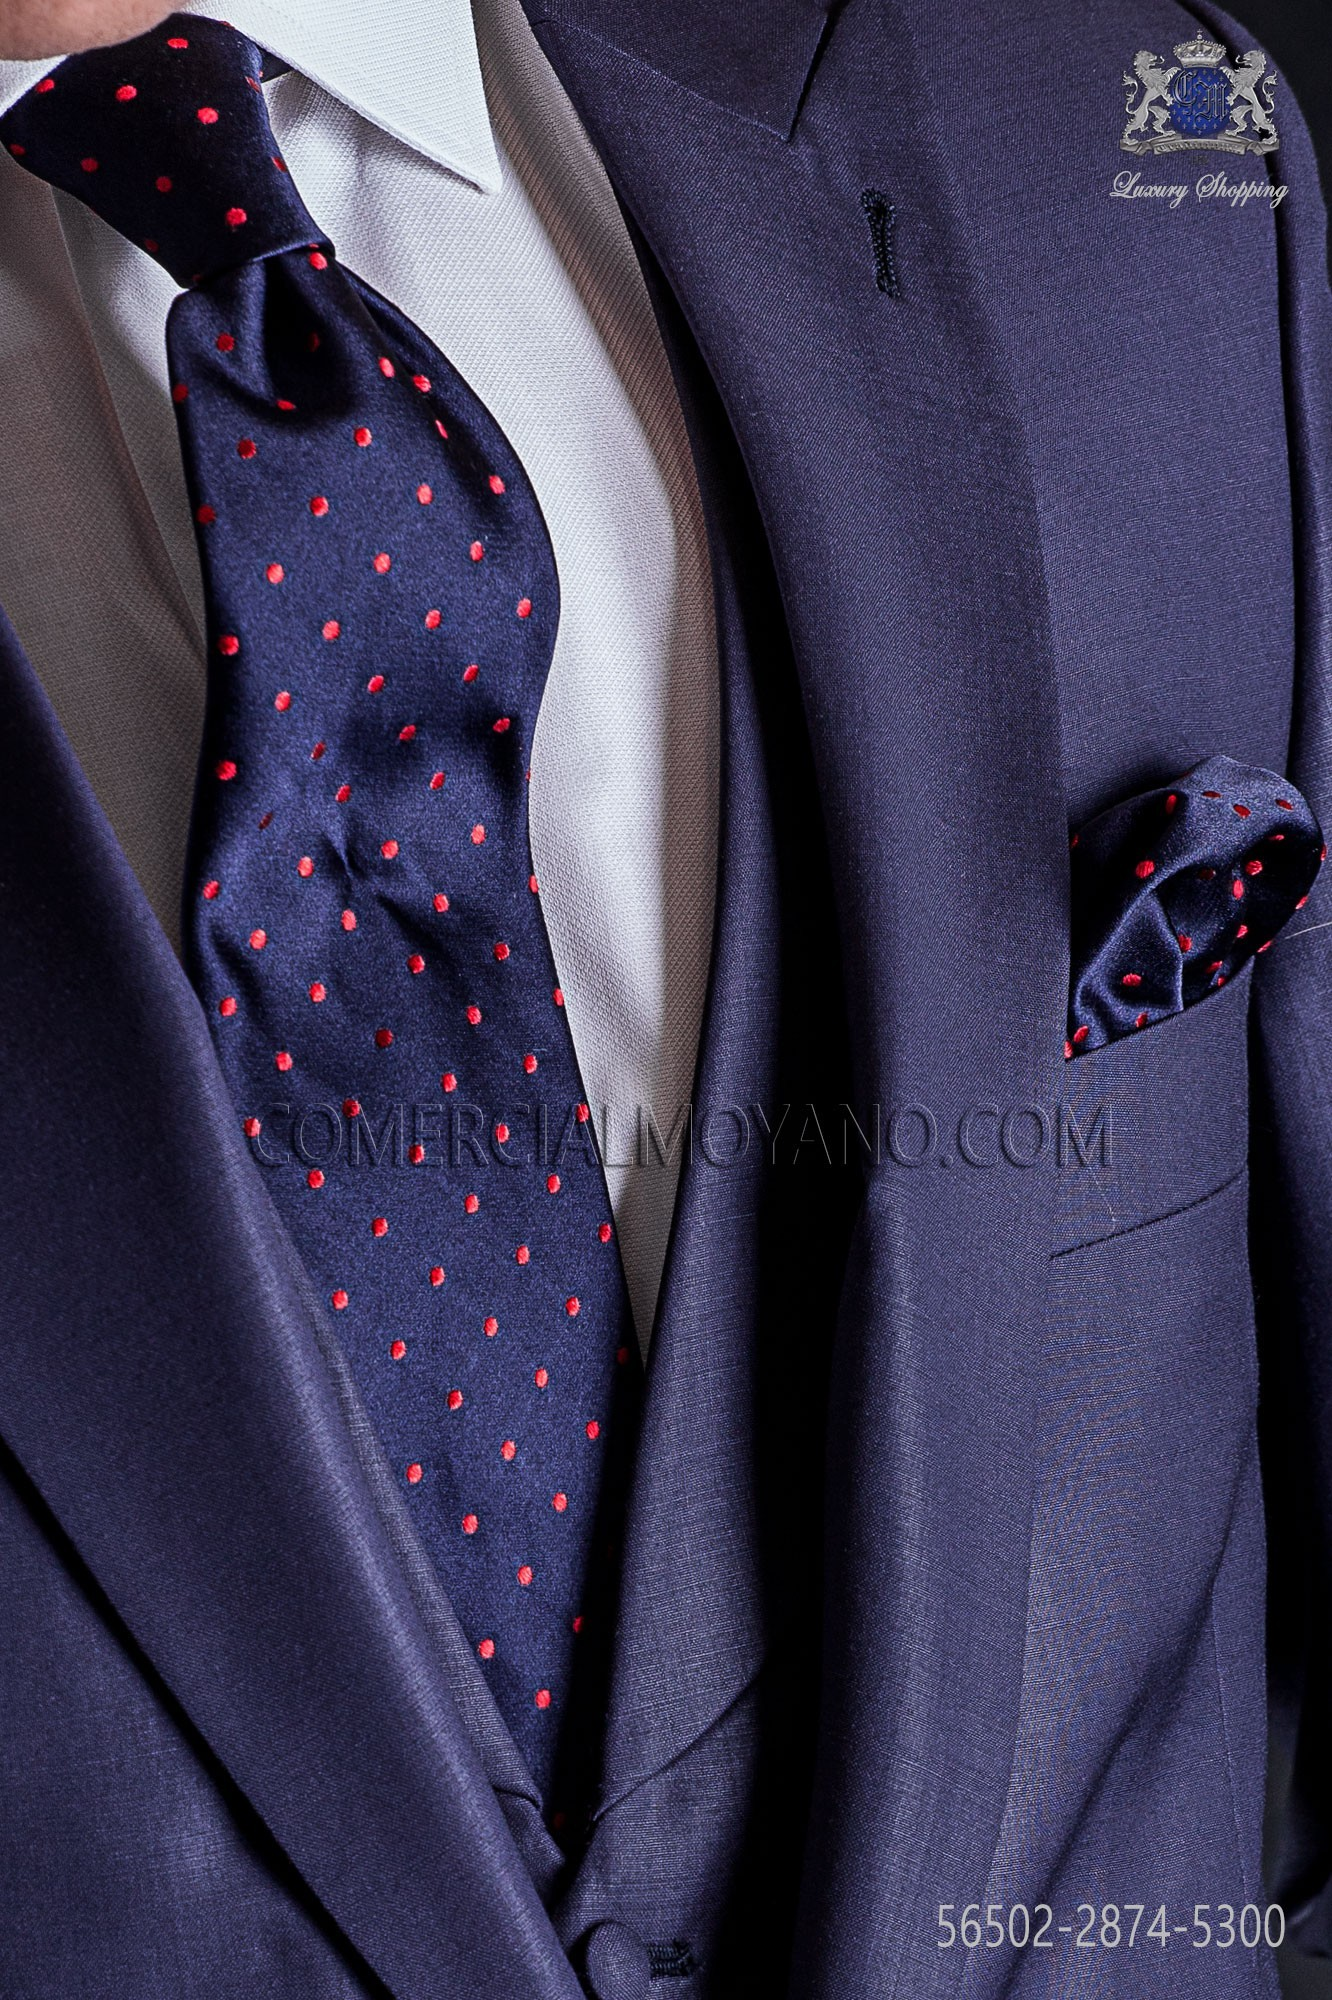 fe7bb8f8763c Navy blue tie with red polka dots and matching pocket handkerchief. Loading  zoom